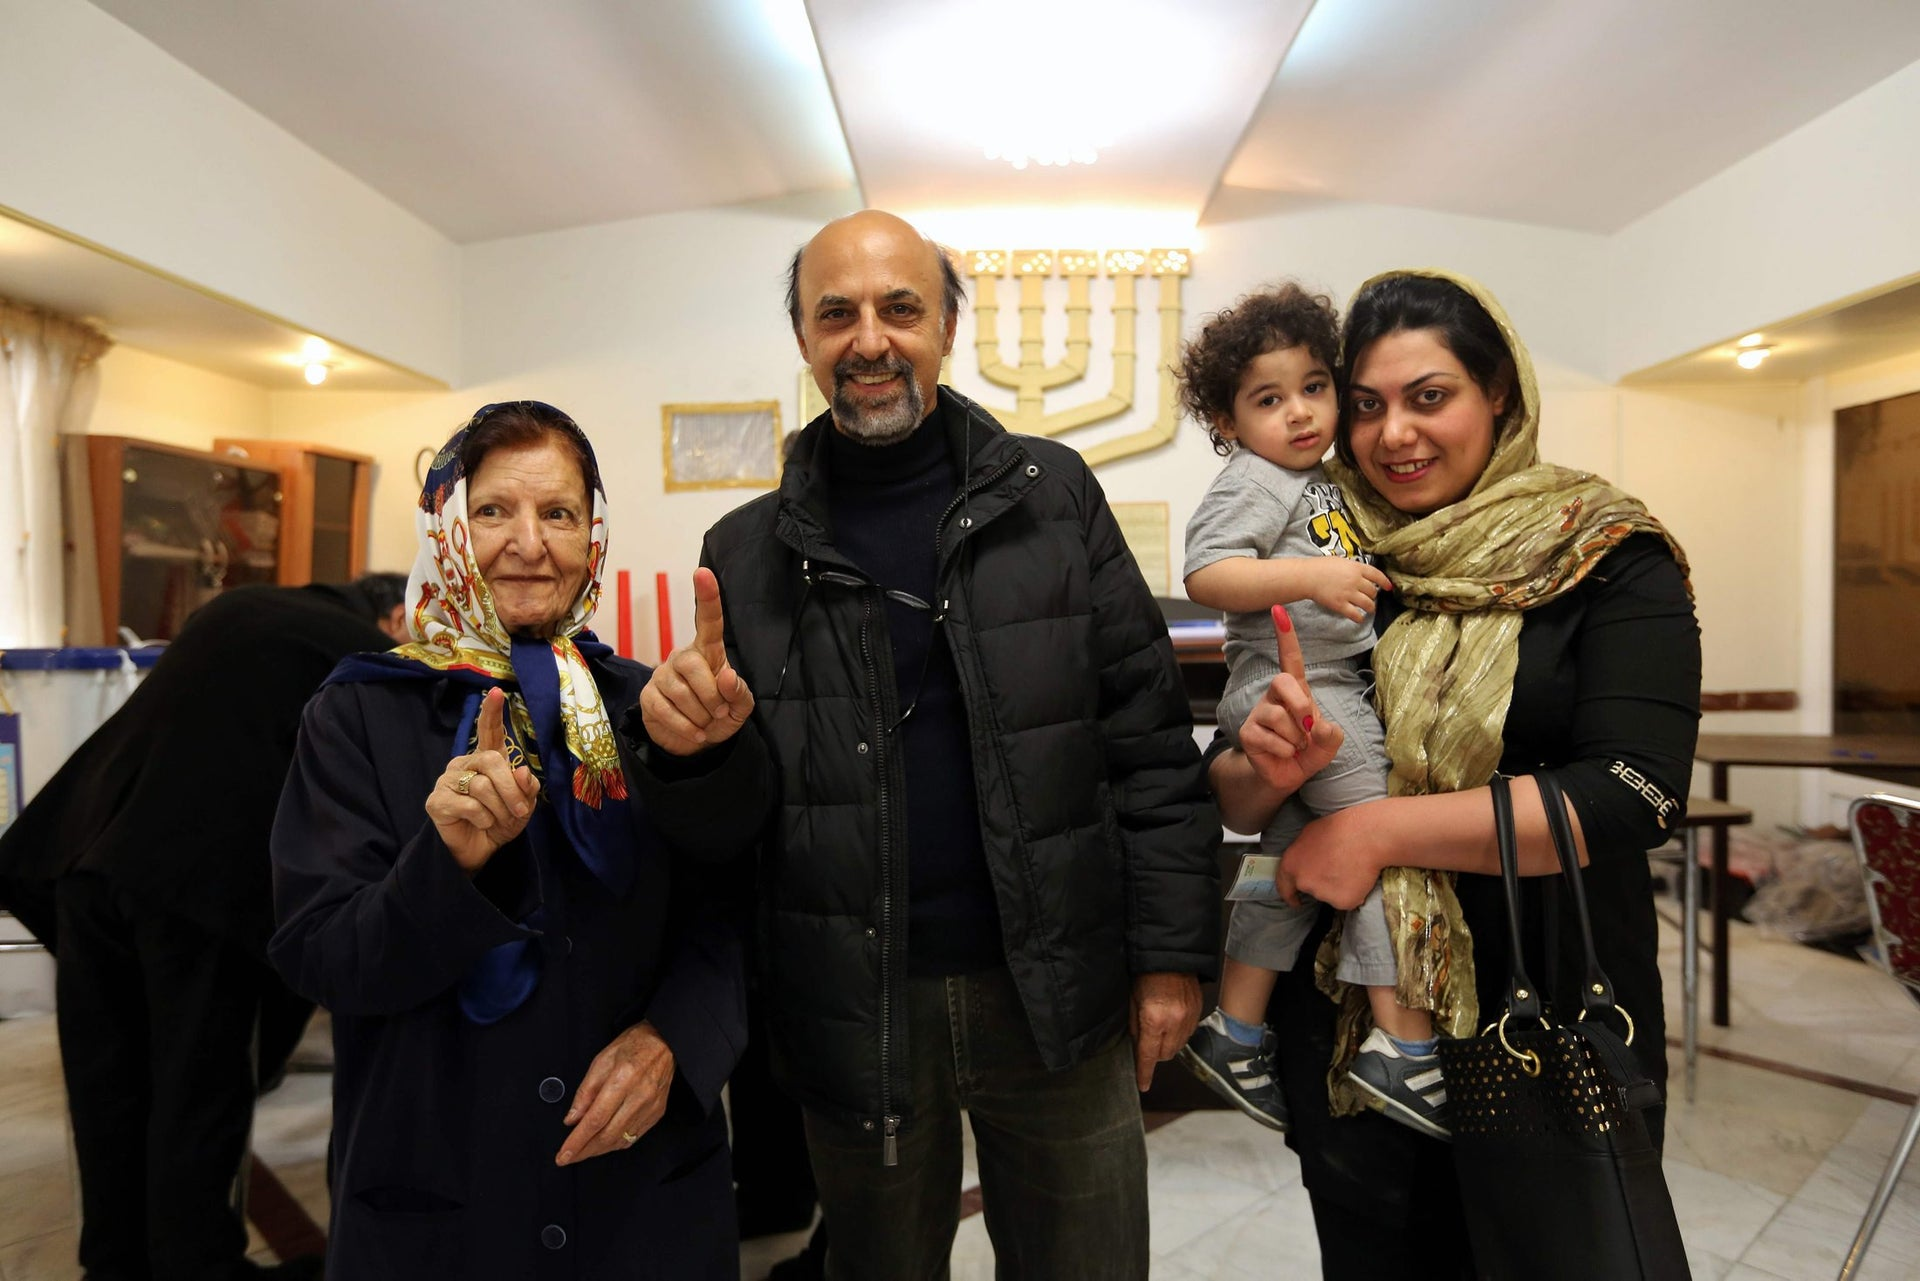 A Jewish Iranian family displays their ink-stained fingers after casting their vote at a synagogue used as a polling station for the Jewish community in Tehran on February 26, 2016.